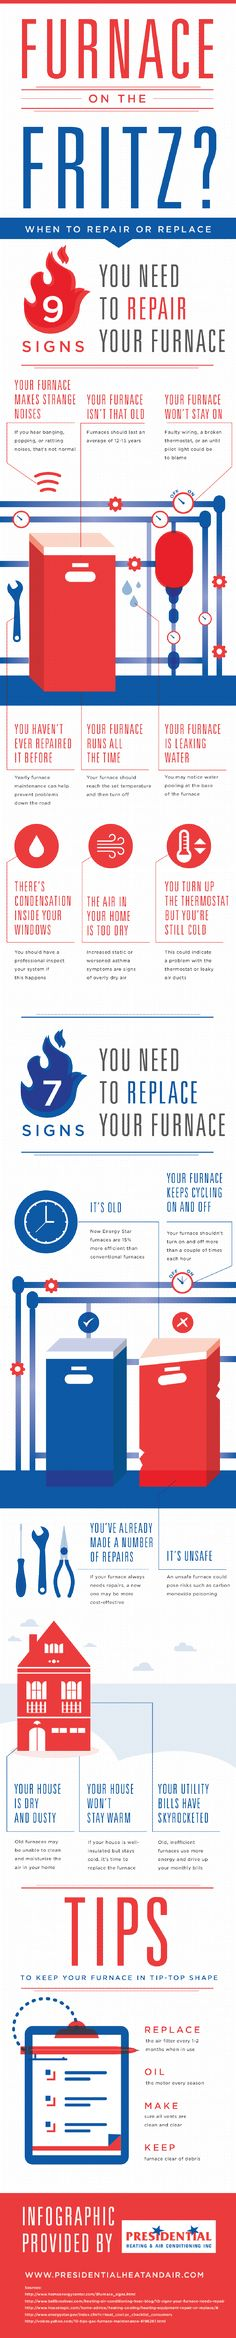 Did you know that new Energy Star furnaces are more efficient than conventional furnaces? Discover more interesting facts and see if it is time to get a new furnace by taking a look at this infographic from a furnace maintenance company in Gaithersburg. Furnace Maintenance, Home Safety Tips, Energy Star Appliances, New Home Construction, Heating And Air Conditioning, Heating Systems, Thing 1, Home Repair, Save Energy